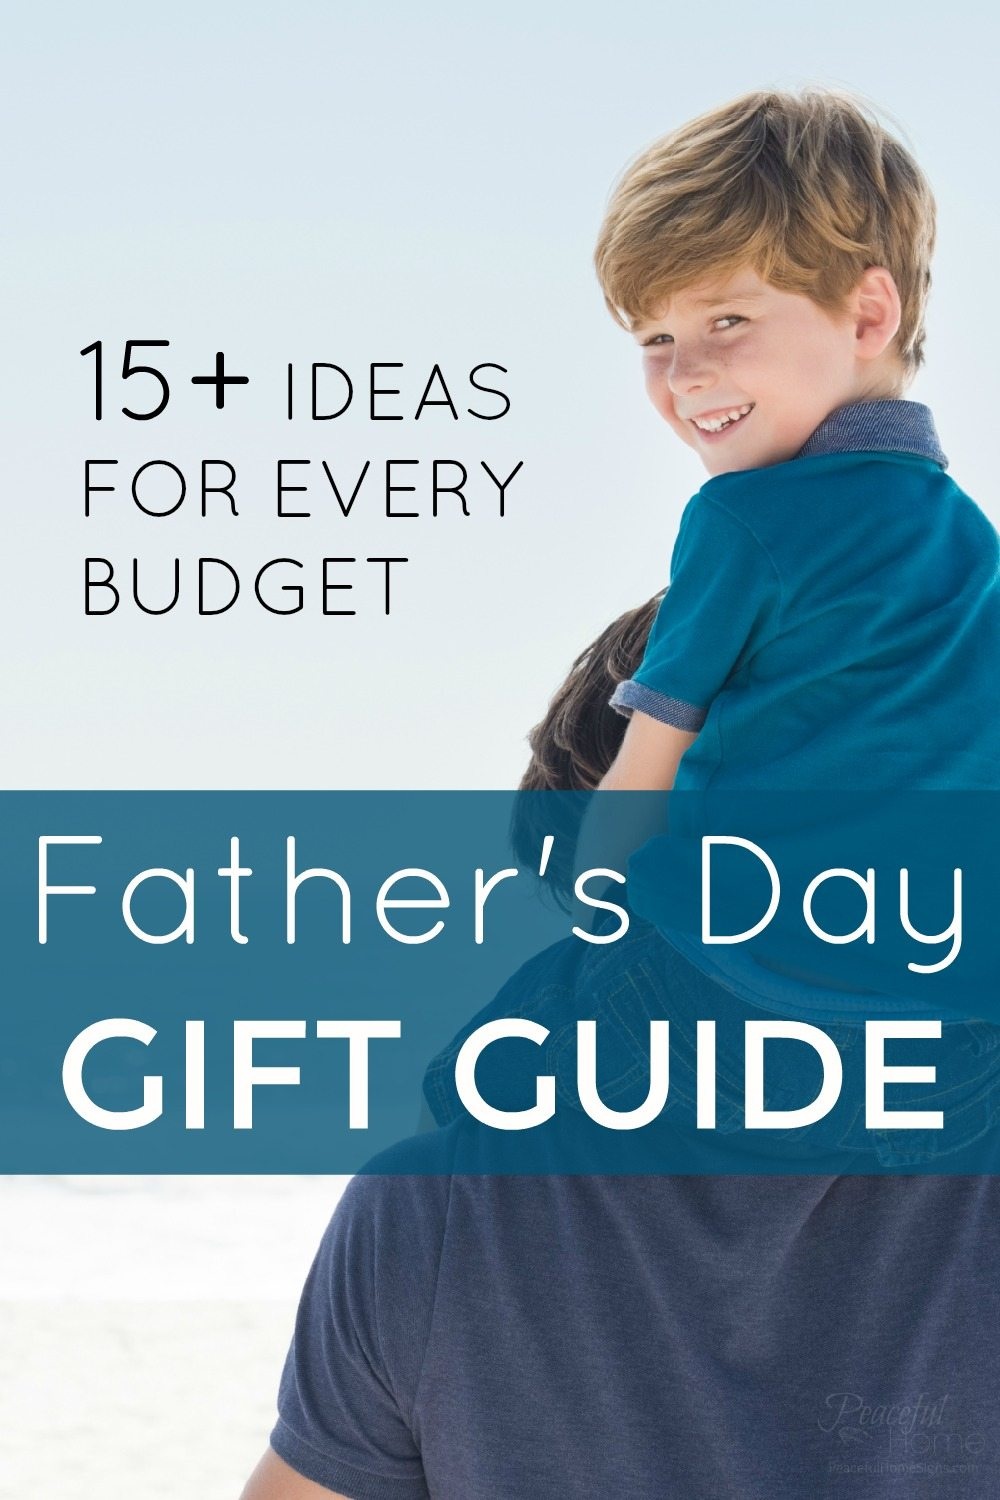 Father's Day Gift Guide: Something For Every Kind ofDad forecasting